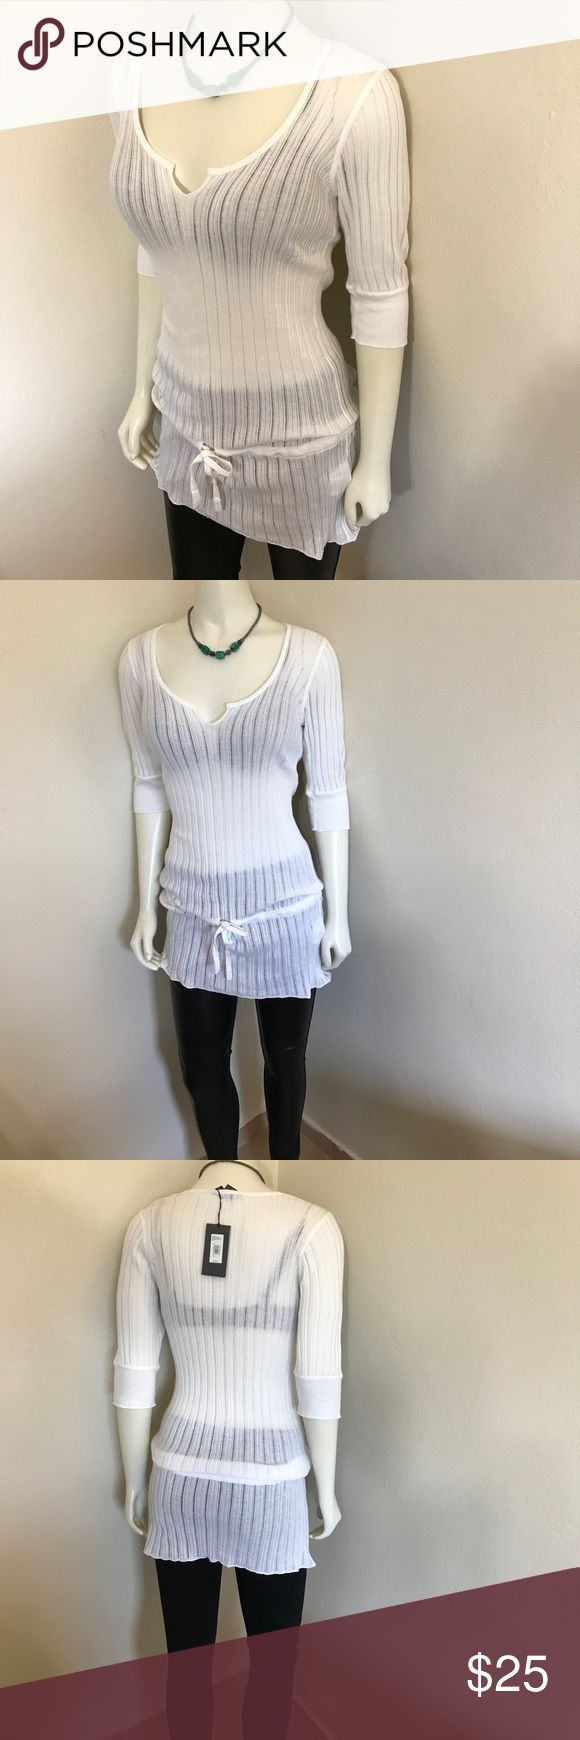 Armani Exchange White Sweater Top Or Dress NWT L 8 Label-A/X Armani Exchange Style-Thin Gage Short Sleeve Sweater Dress, Tunic Top. Can be worn with as a dress or over leggings/skirt like a tunic. I have 4 of these in 4 different colors.  Size-Large. Shown on a Size 2 5'8 mannequin. Fits a 8, 10 best Measurements-B-36 W-28 Hip-36 Shoulder to hem-24 All measurements unstretched. Color-White Fabric- Very thin Ribbed 100% Cotton Knit Condition-New with tags.  Origin-Hong Kong A/X Armani…